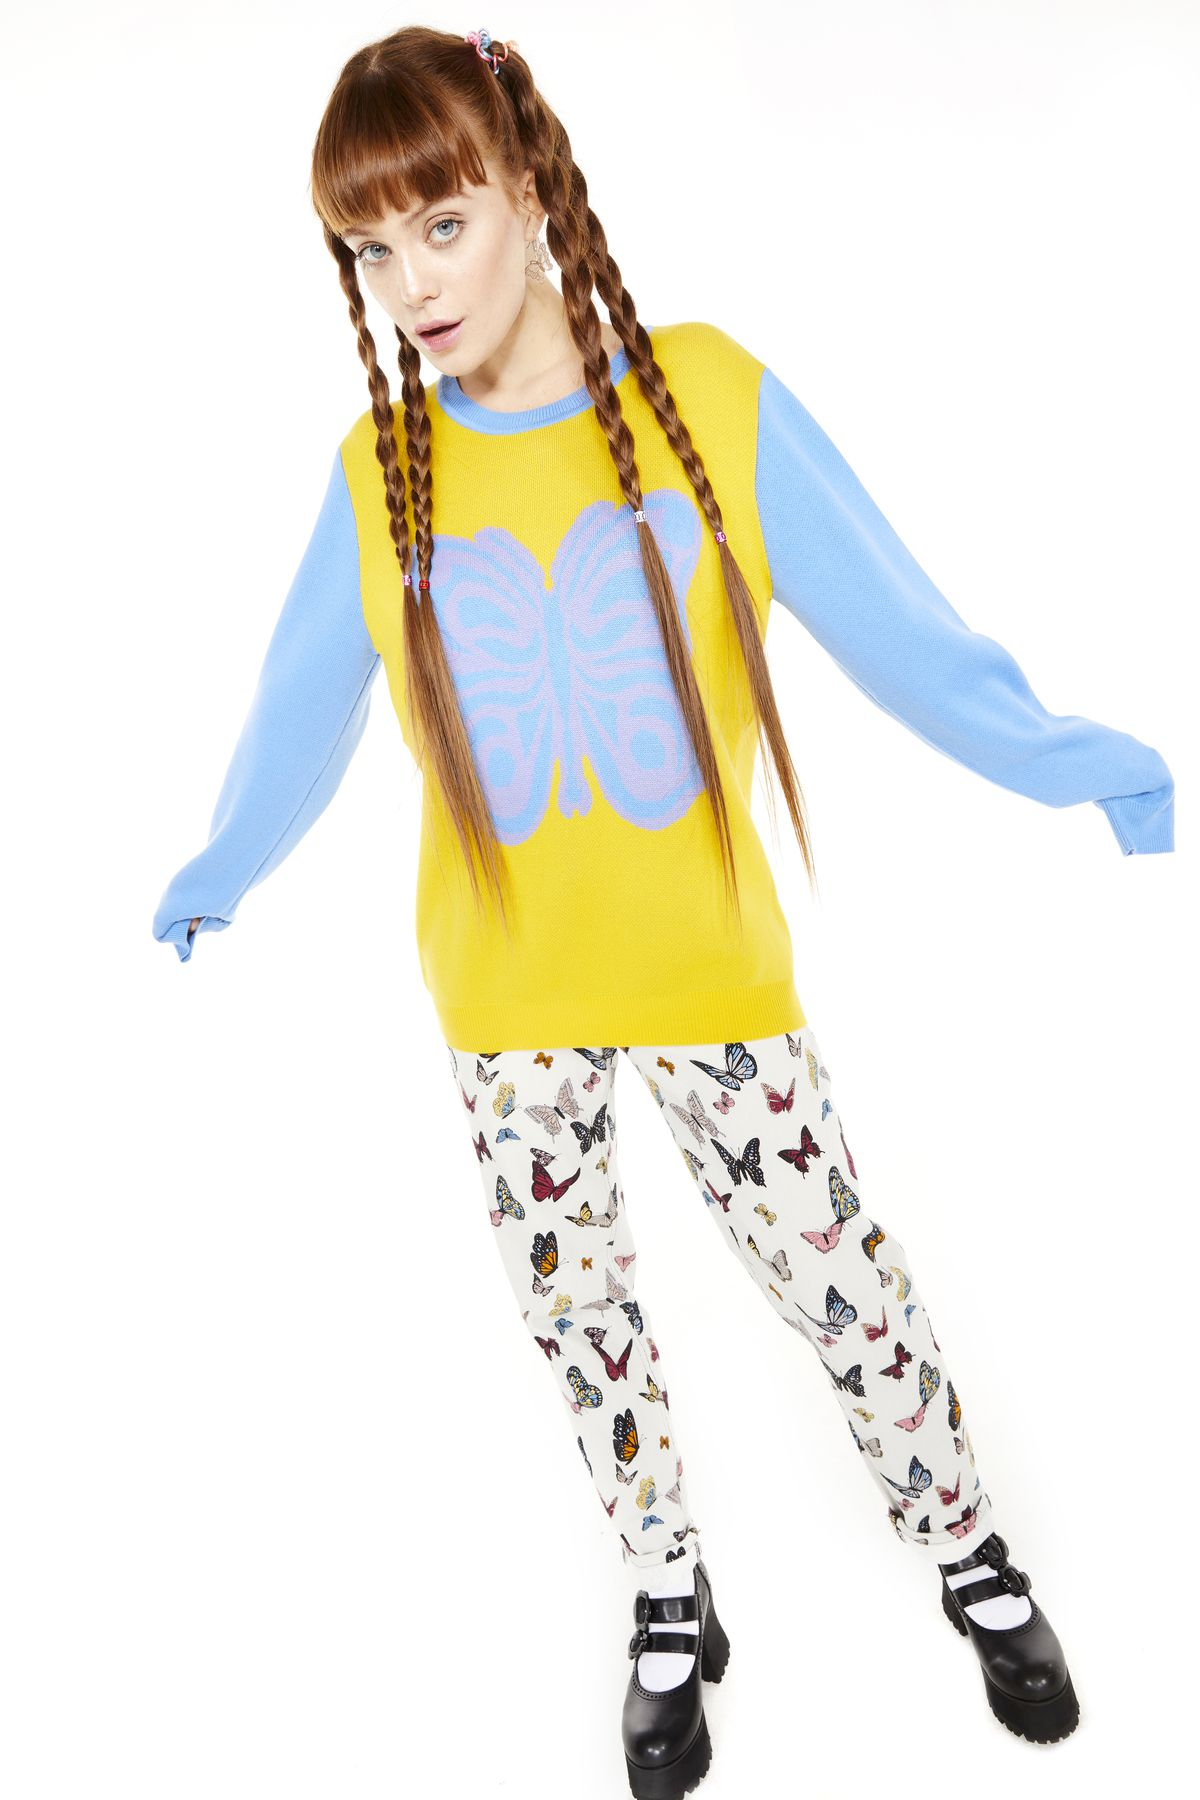 A model wears a similar yellow and blue butterfly sweater.